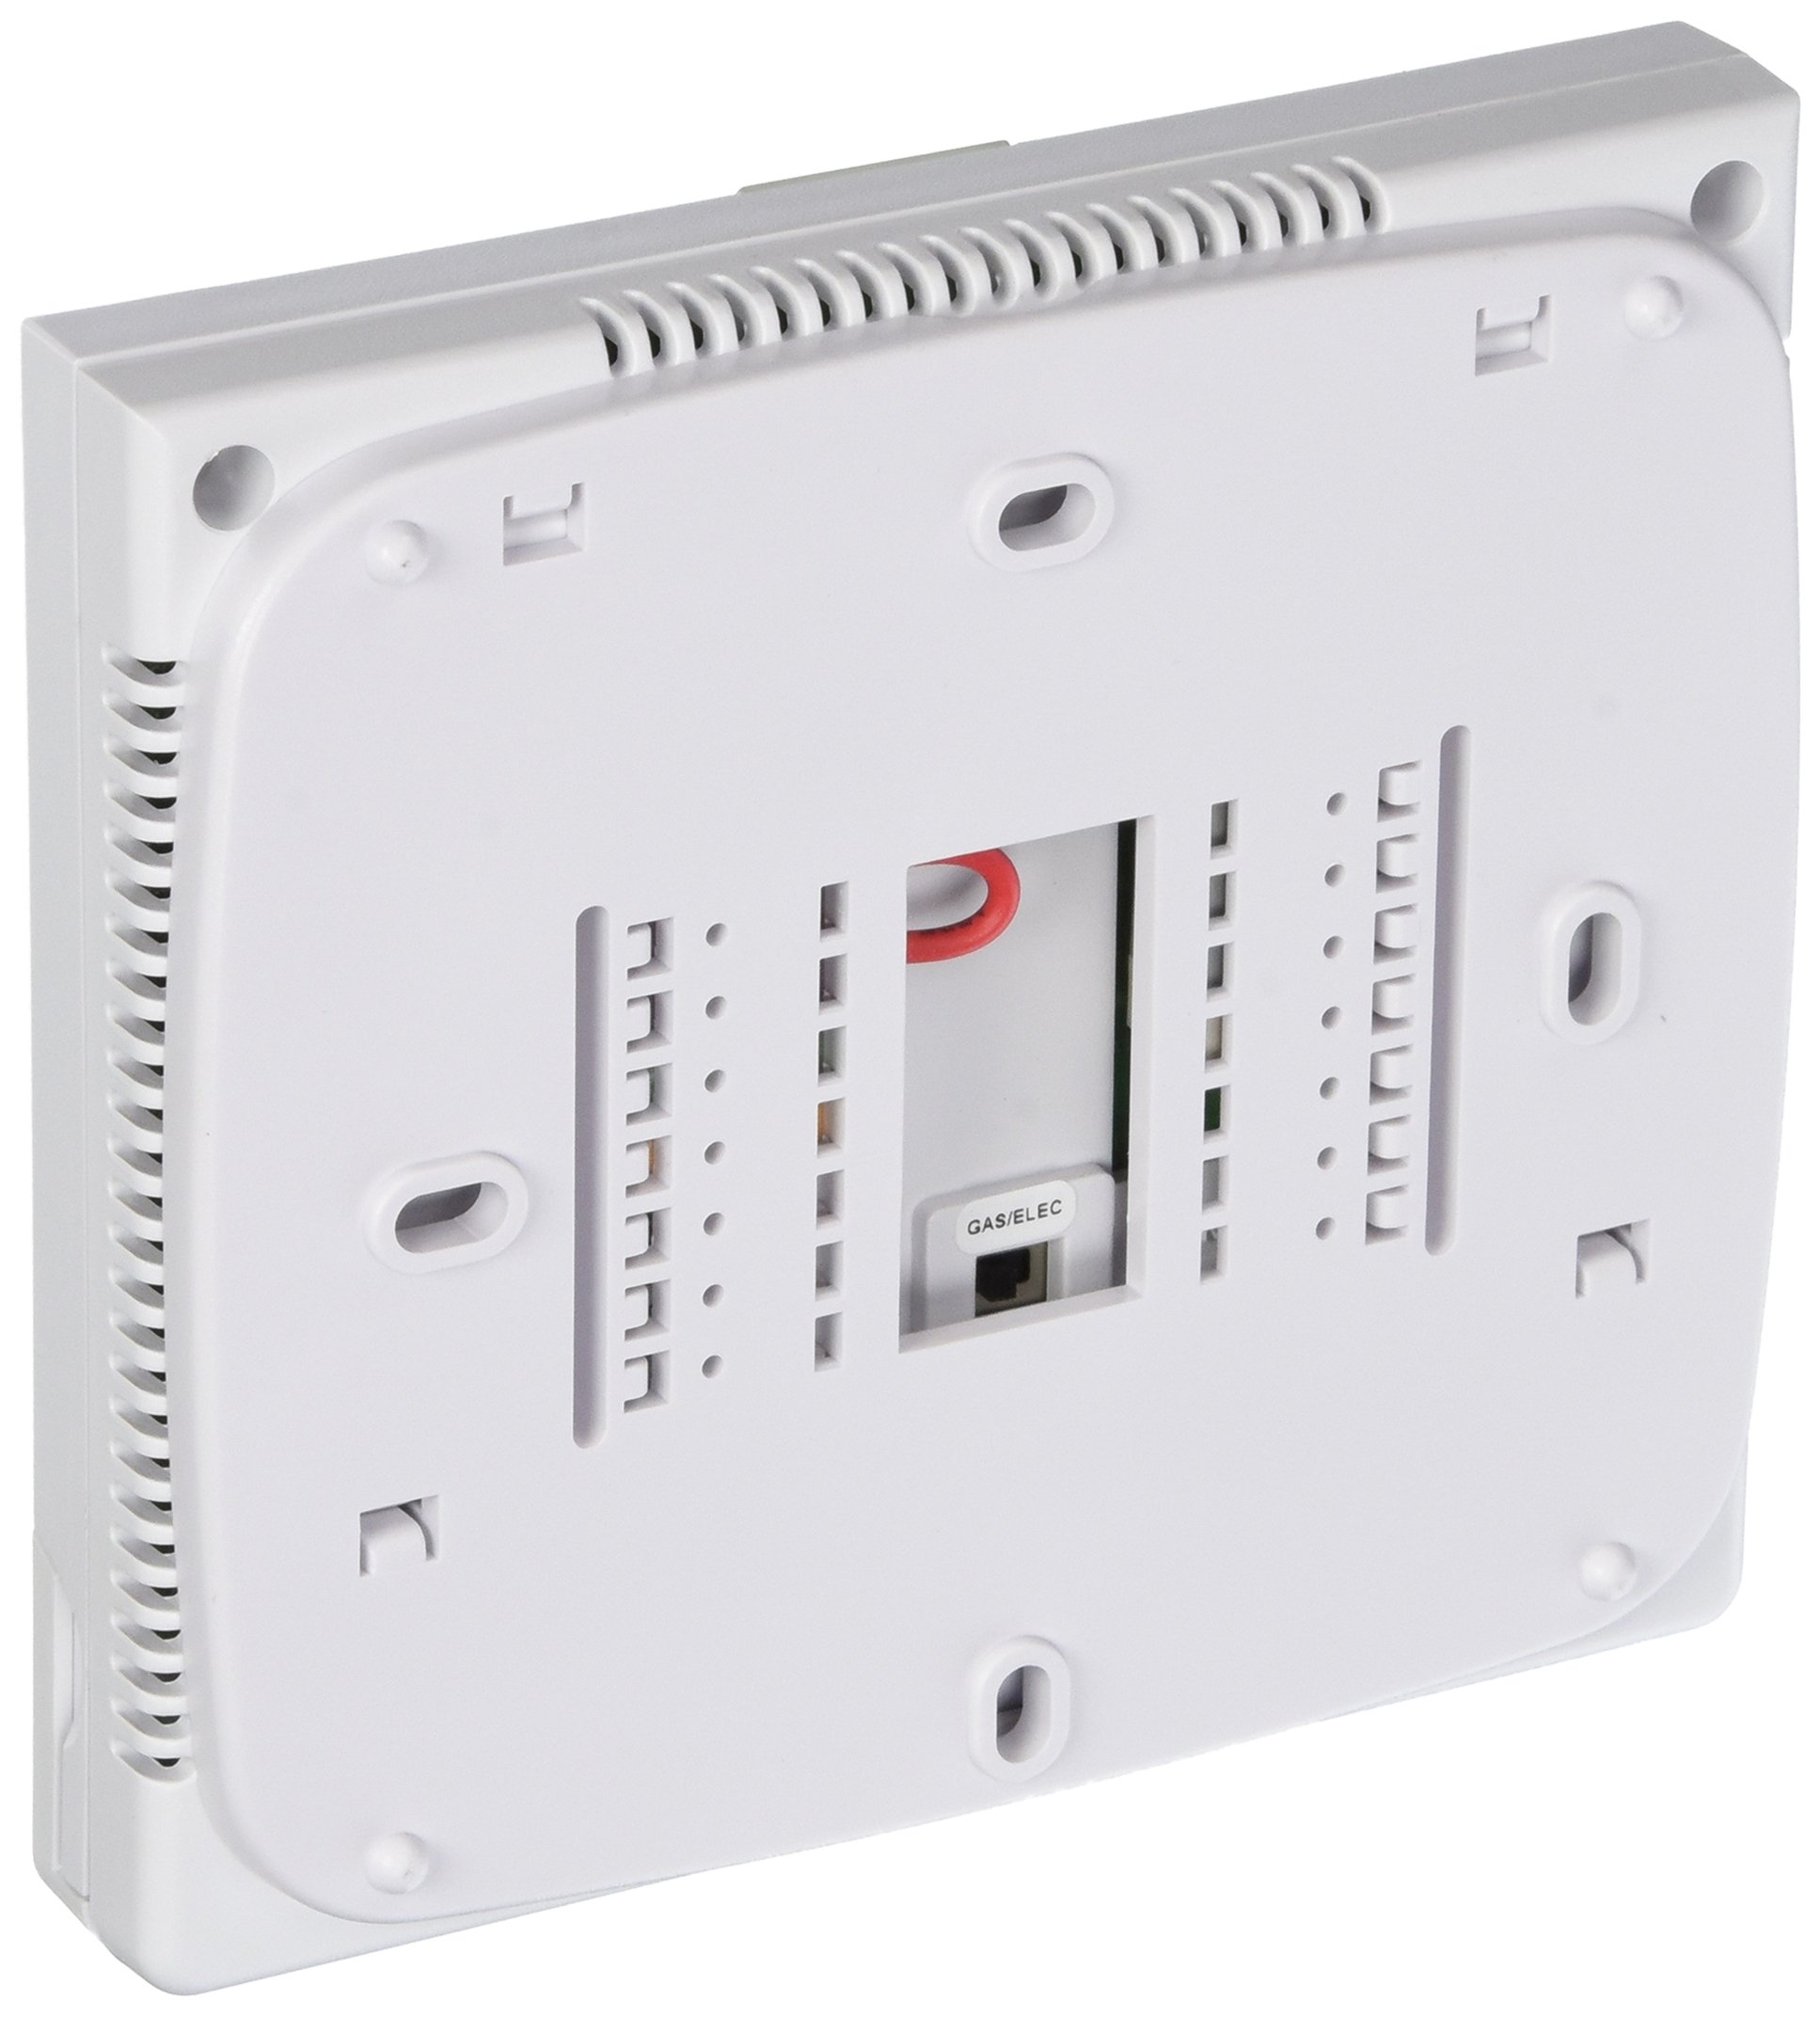 PRO1 IAQ T701 Non-Programmable Electronic Thermostat by PRO1 IAQ (Image #1)